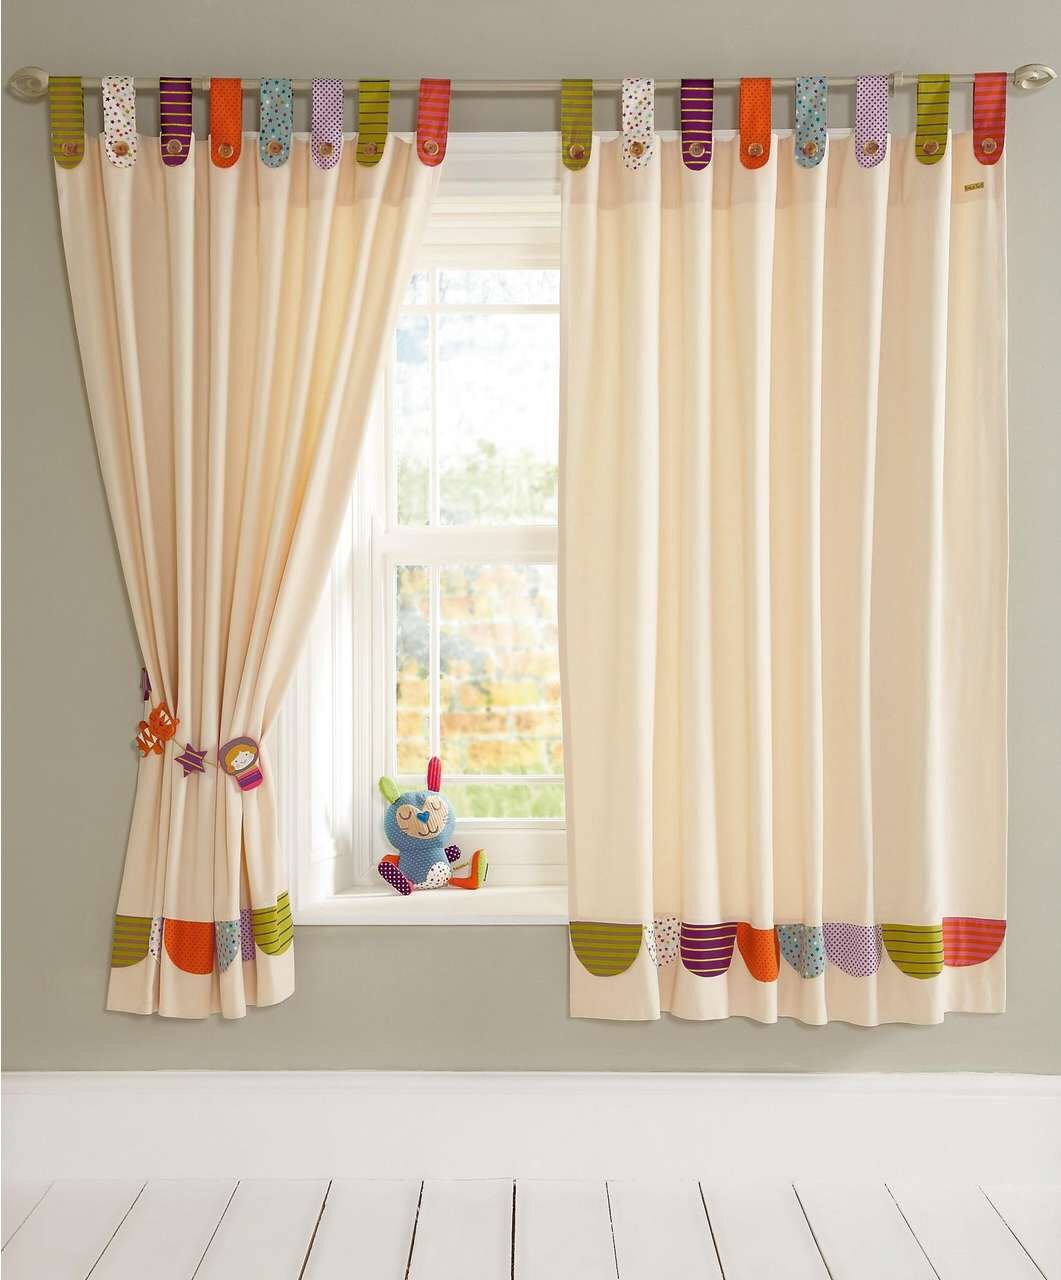 Colourful Tab Top Curtains For Kids Bedroom And Nursery Baby Room Curtains Kids Room Curtains Boys Bedroom Curtains,Single Bedroom Small 1 Bedroom Apartment Design Plans